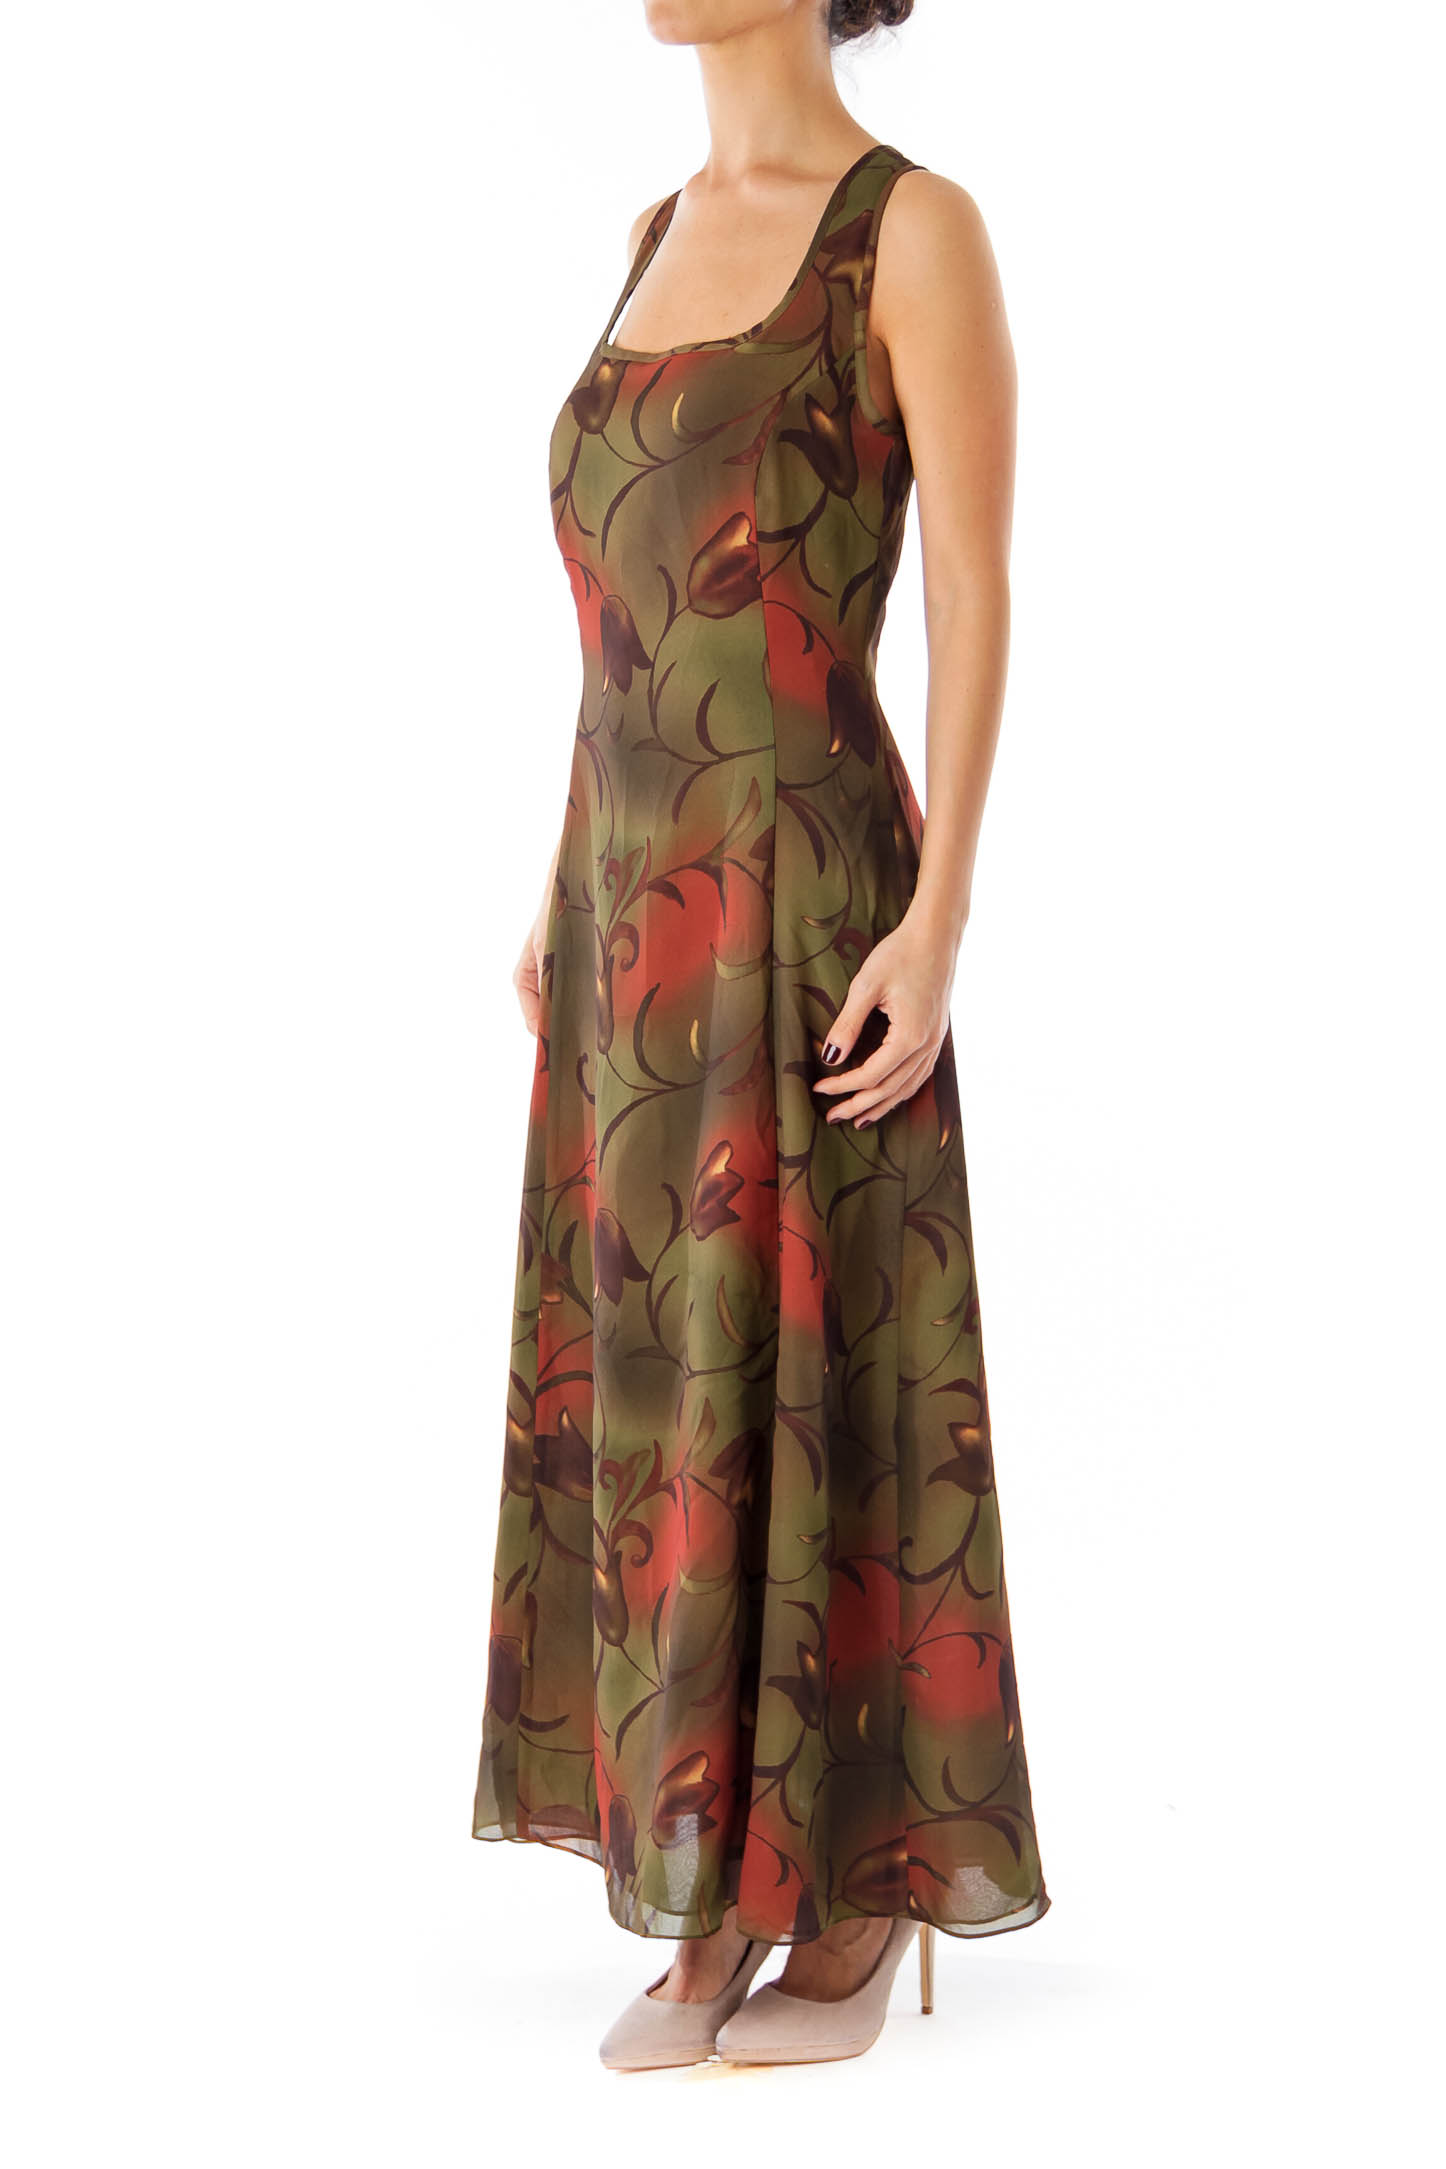 1abc2df3 Banana Republic Leopard Print Maxi Dress | Saddha